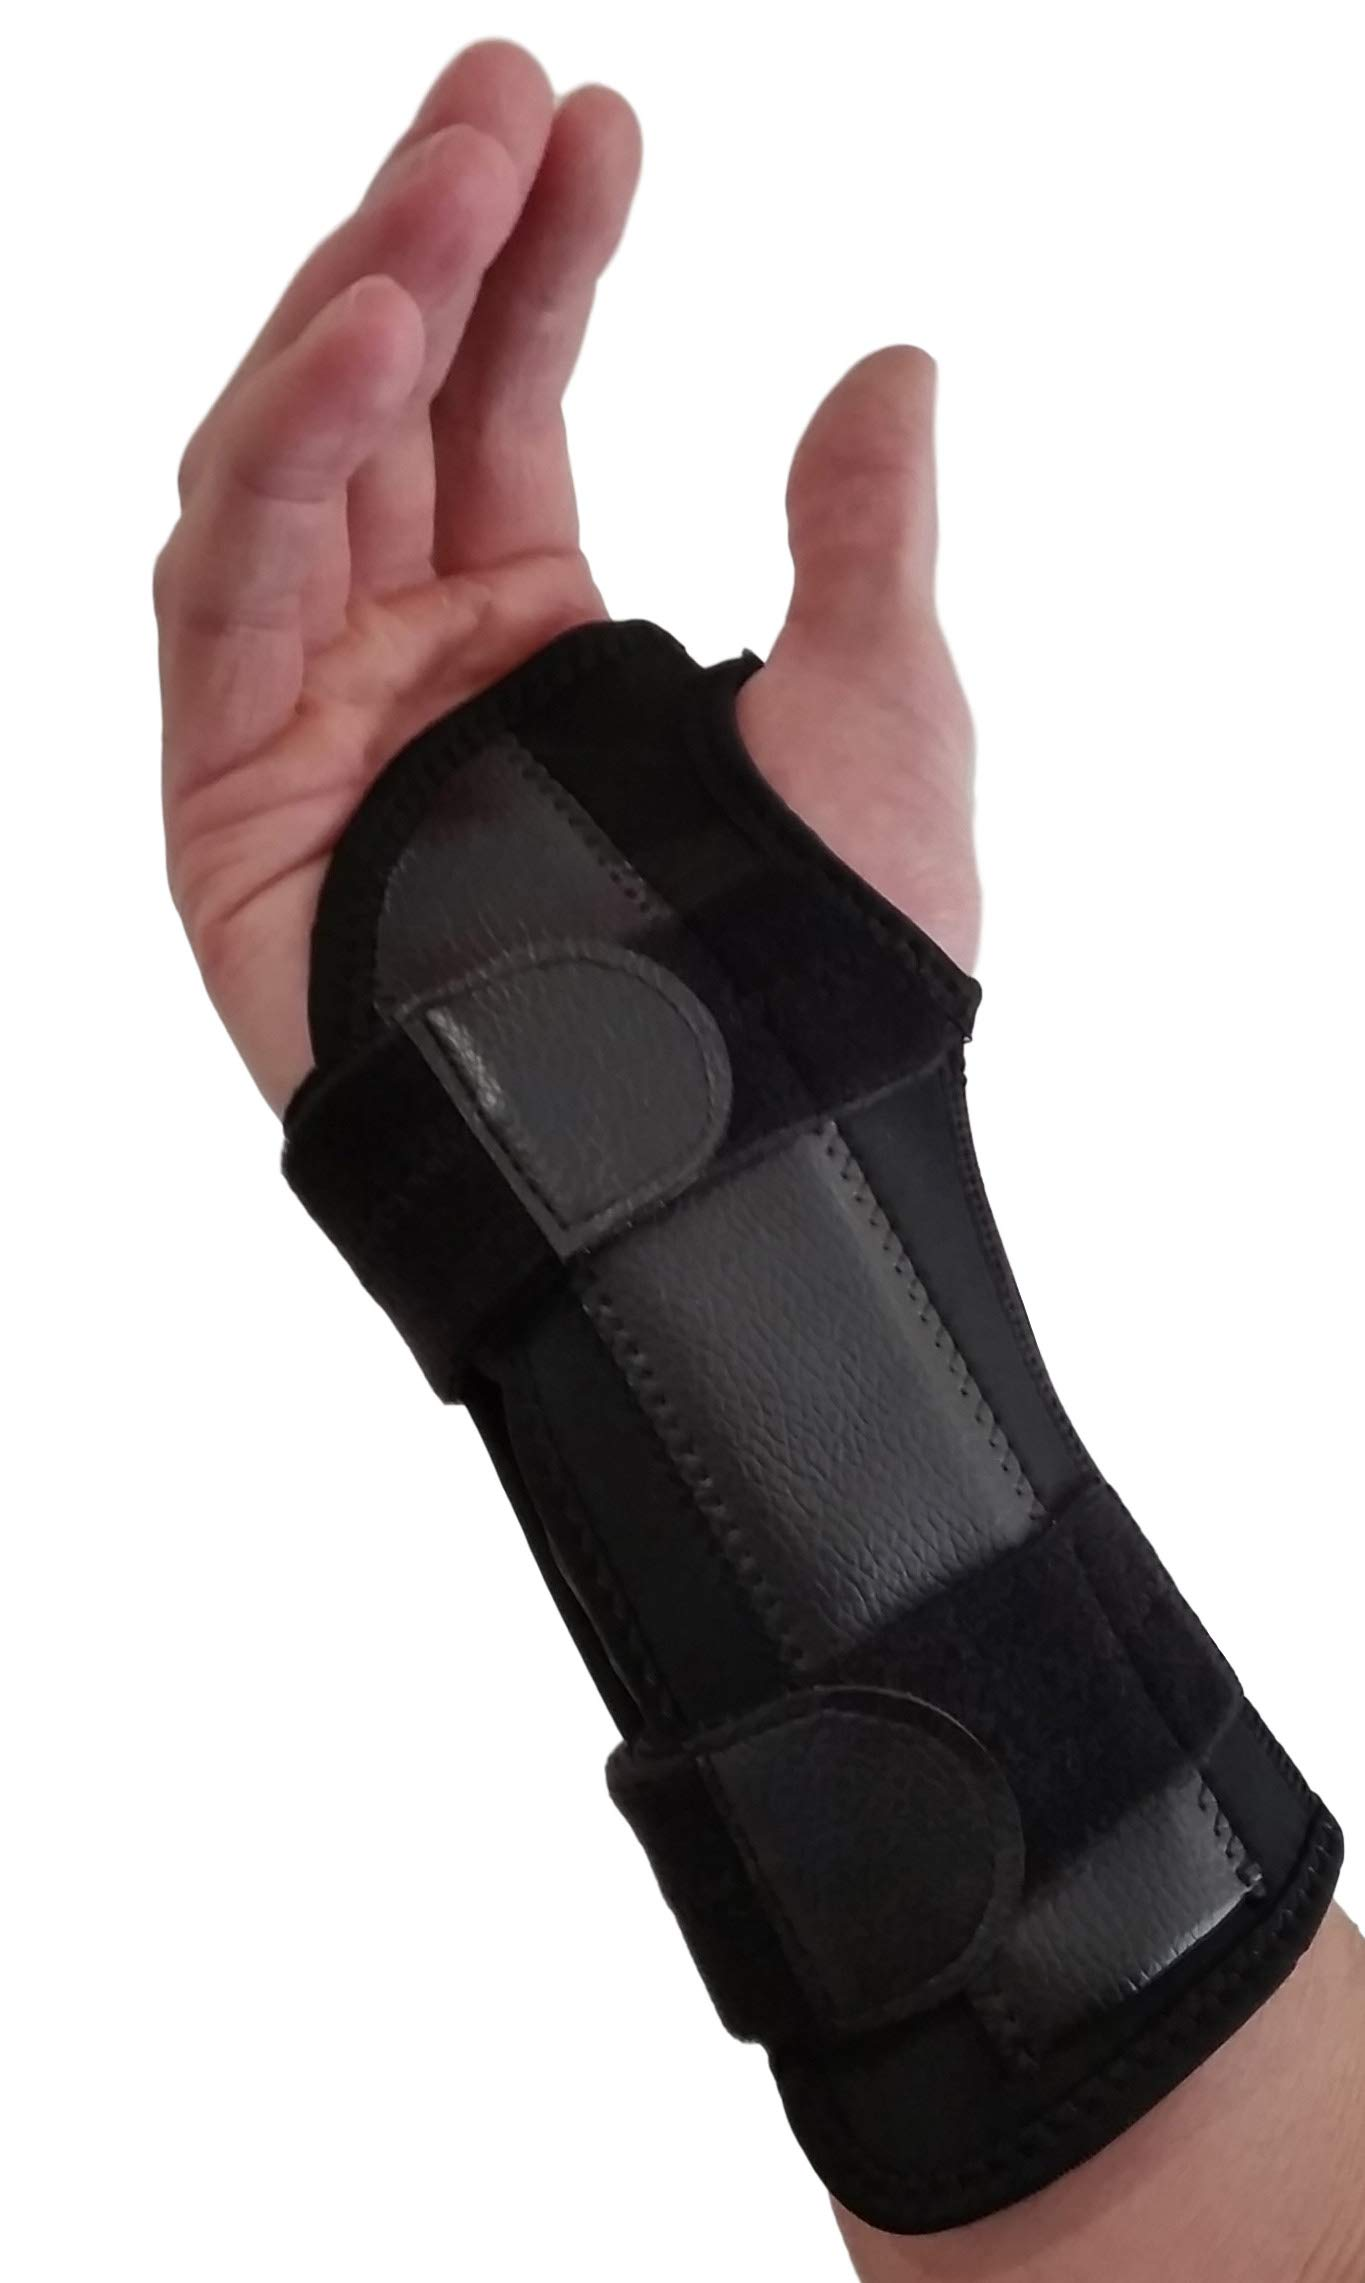 Carpal Tunnel Wrist Brace Night Support - Wrist Splint Arm Stabilizer & Hand Brace for Carpal Tunnel Syndrome Pain Relief with Compression Sleeve for Forearm or Wrist Tendonitis Pain Treatment (Right) by ARMSTRONG AMERIKA (Image #1)